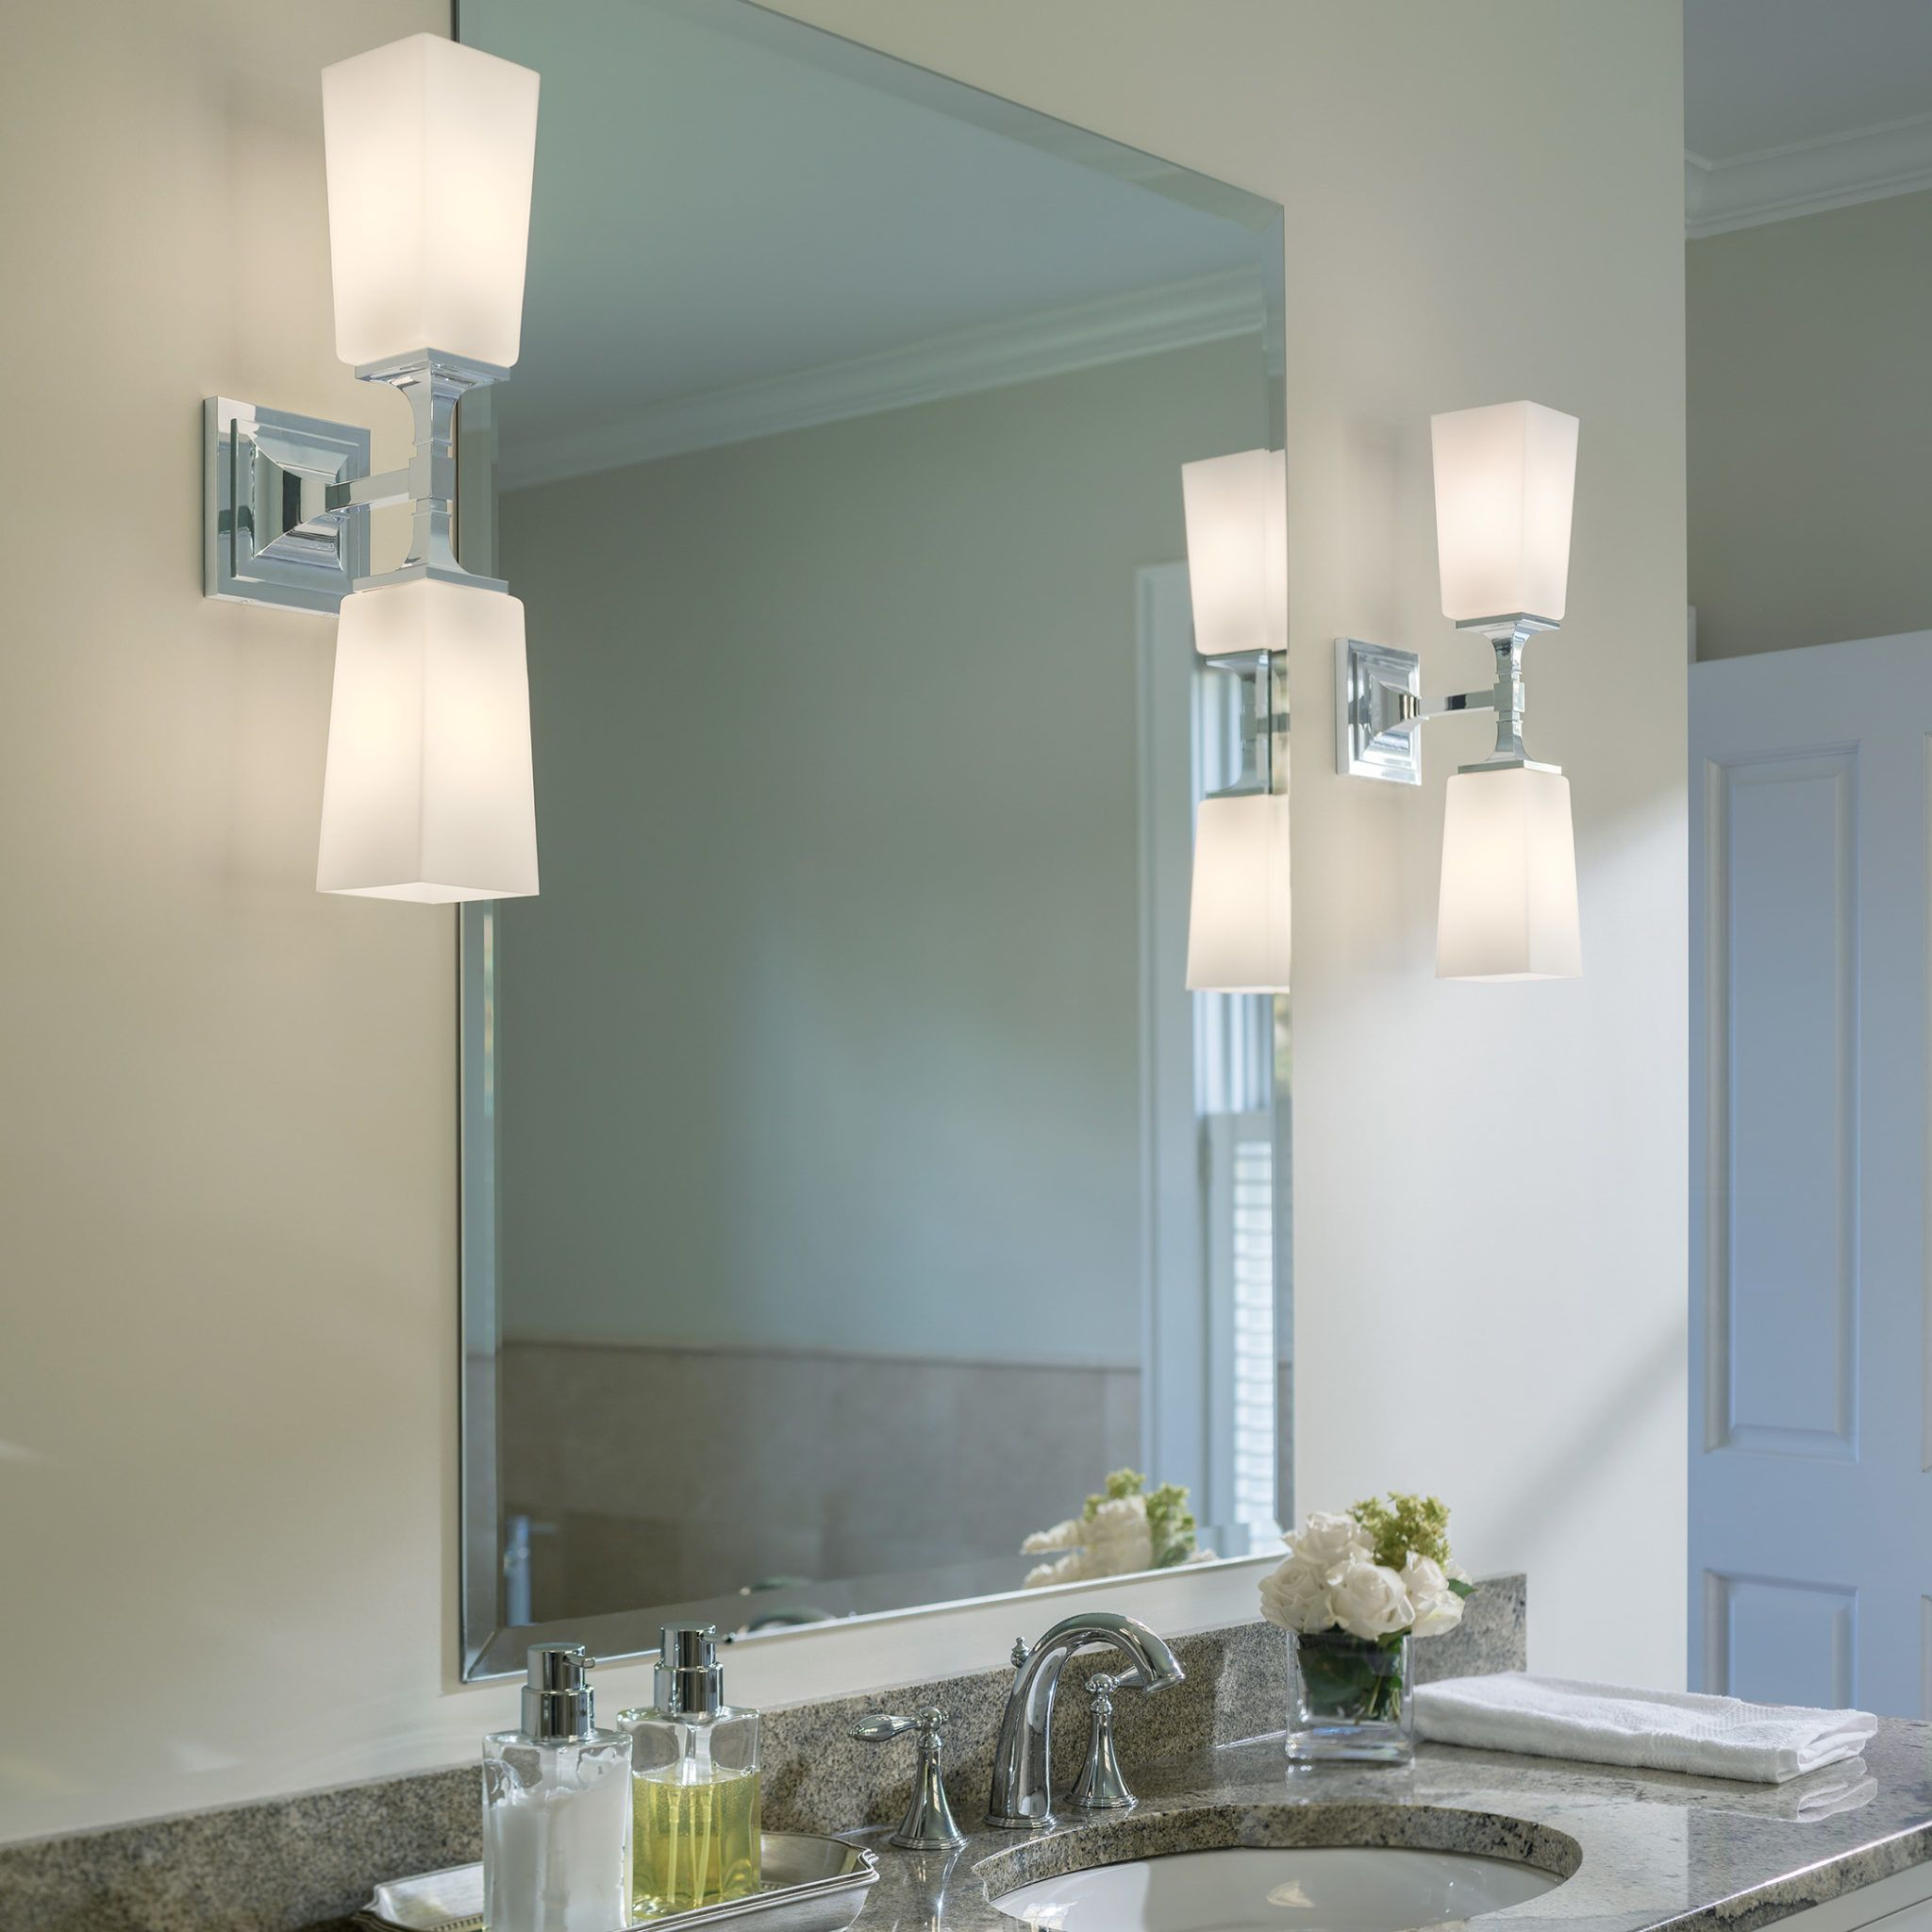 Best Height For Your Bathroom Wall Sconce I Capitol Lighting In 2021 Modern Bathroom Vanity Lighting Bathroom Sconces Wall Sconce Lighting